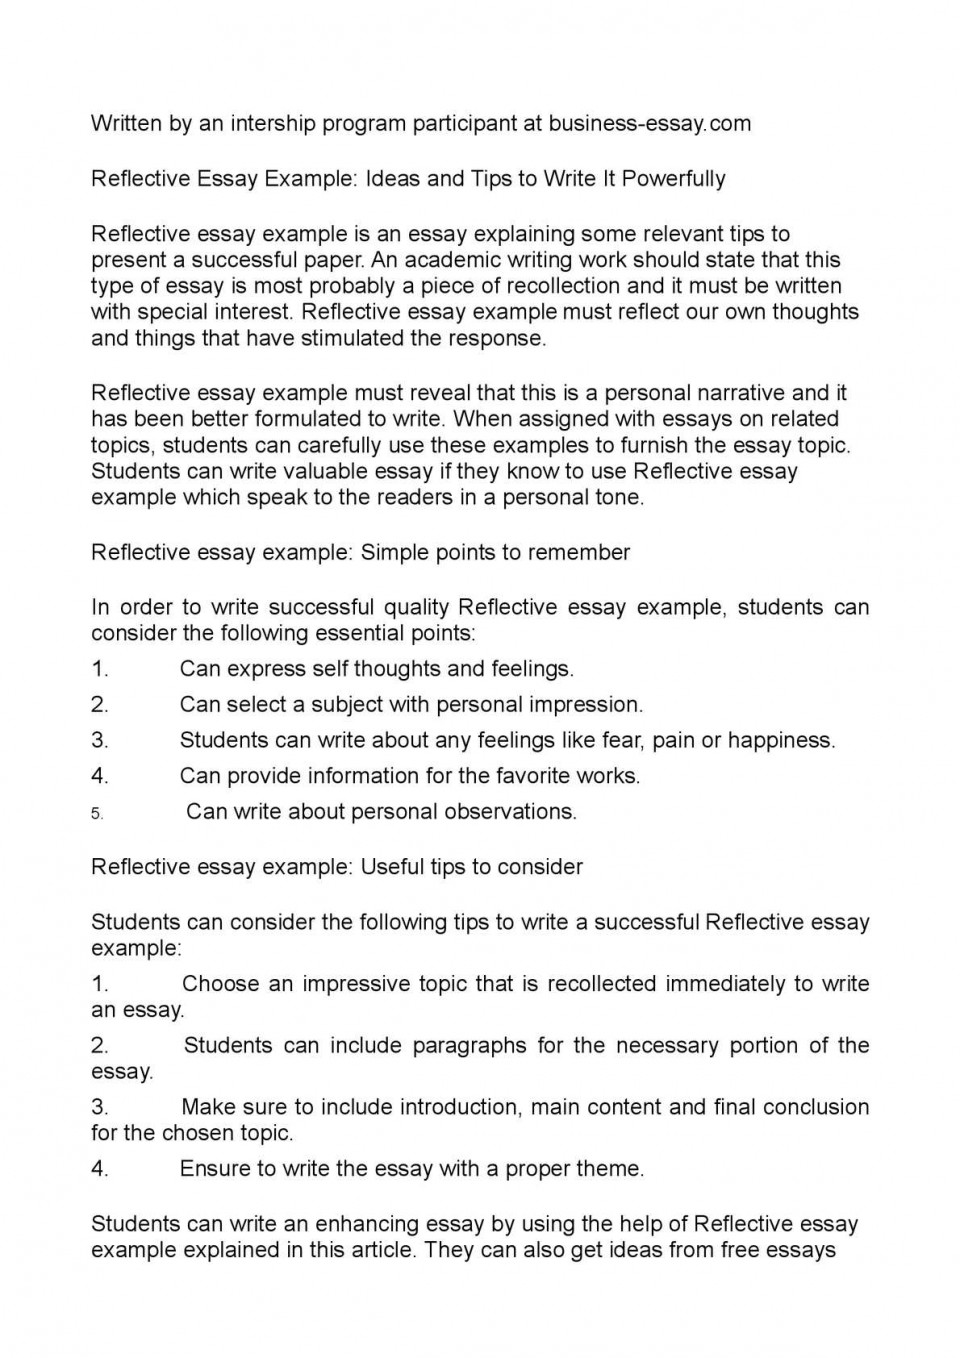 017 Reflective Essay Examples Example Beautiful English Pdf For Middle School On Writing Class 960